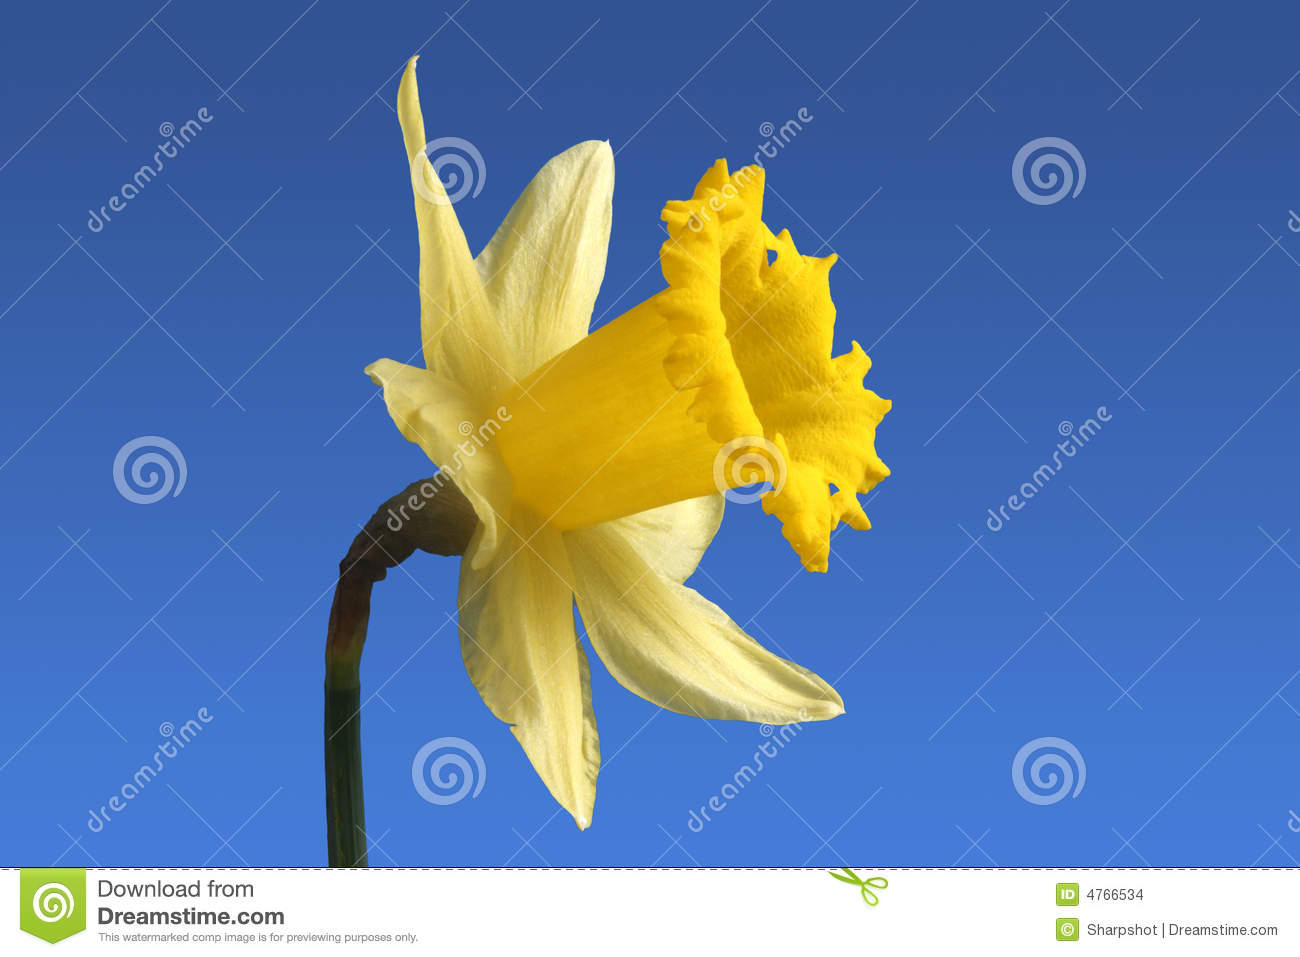 Fiori In Inglese.English Daffodil Flower Stock Photo Image Of Color Bloom 4766534